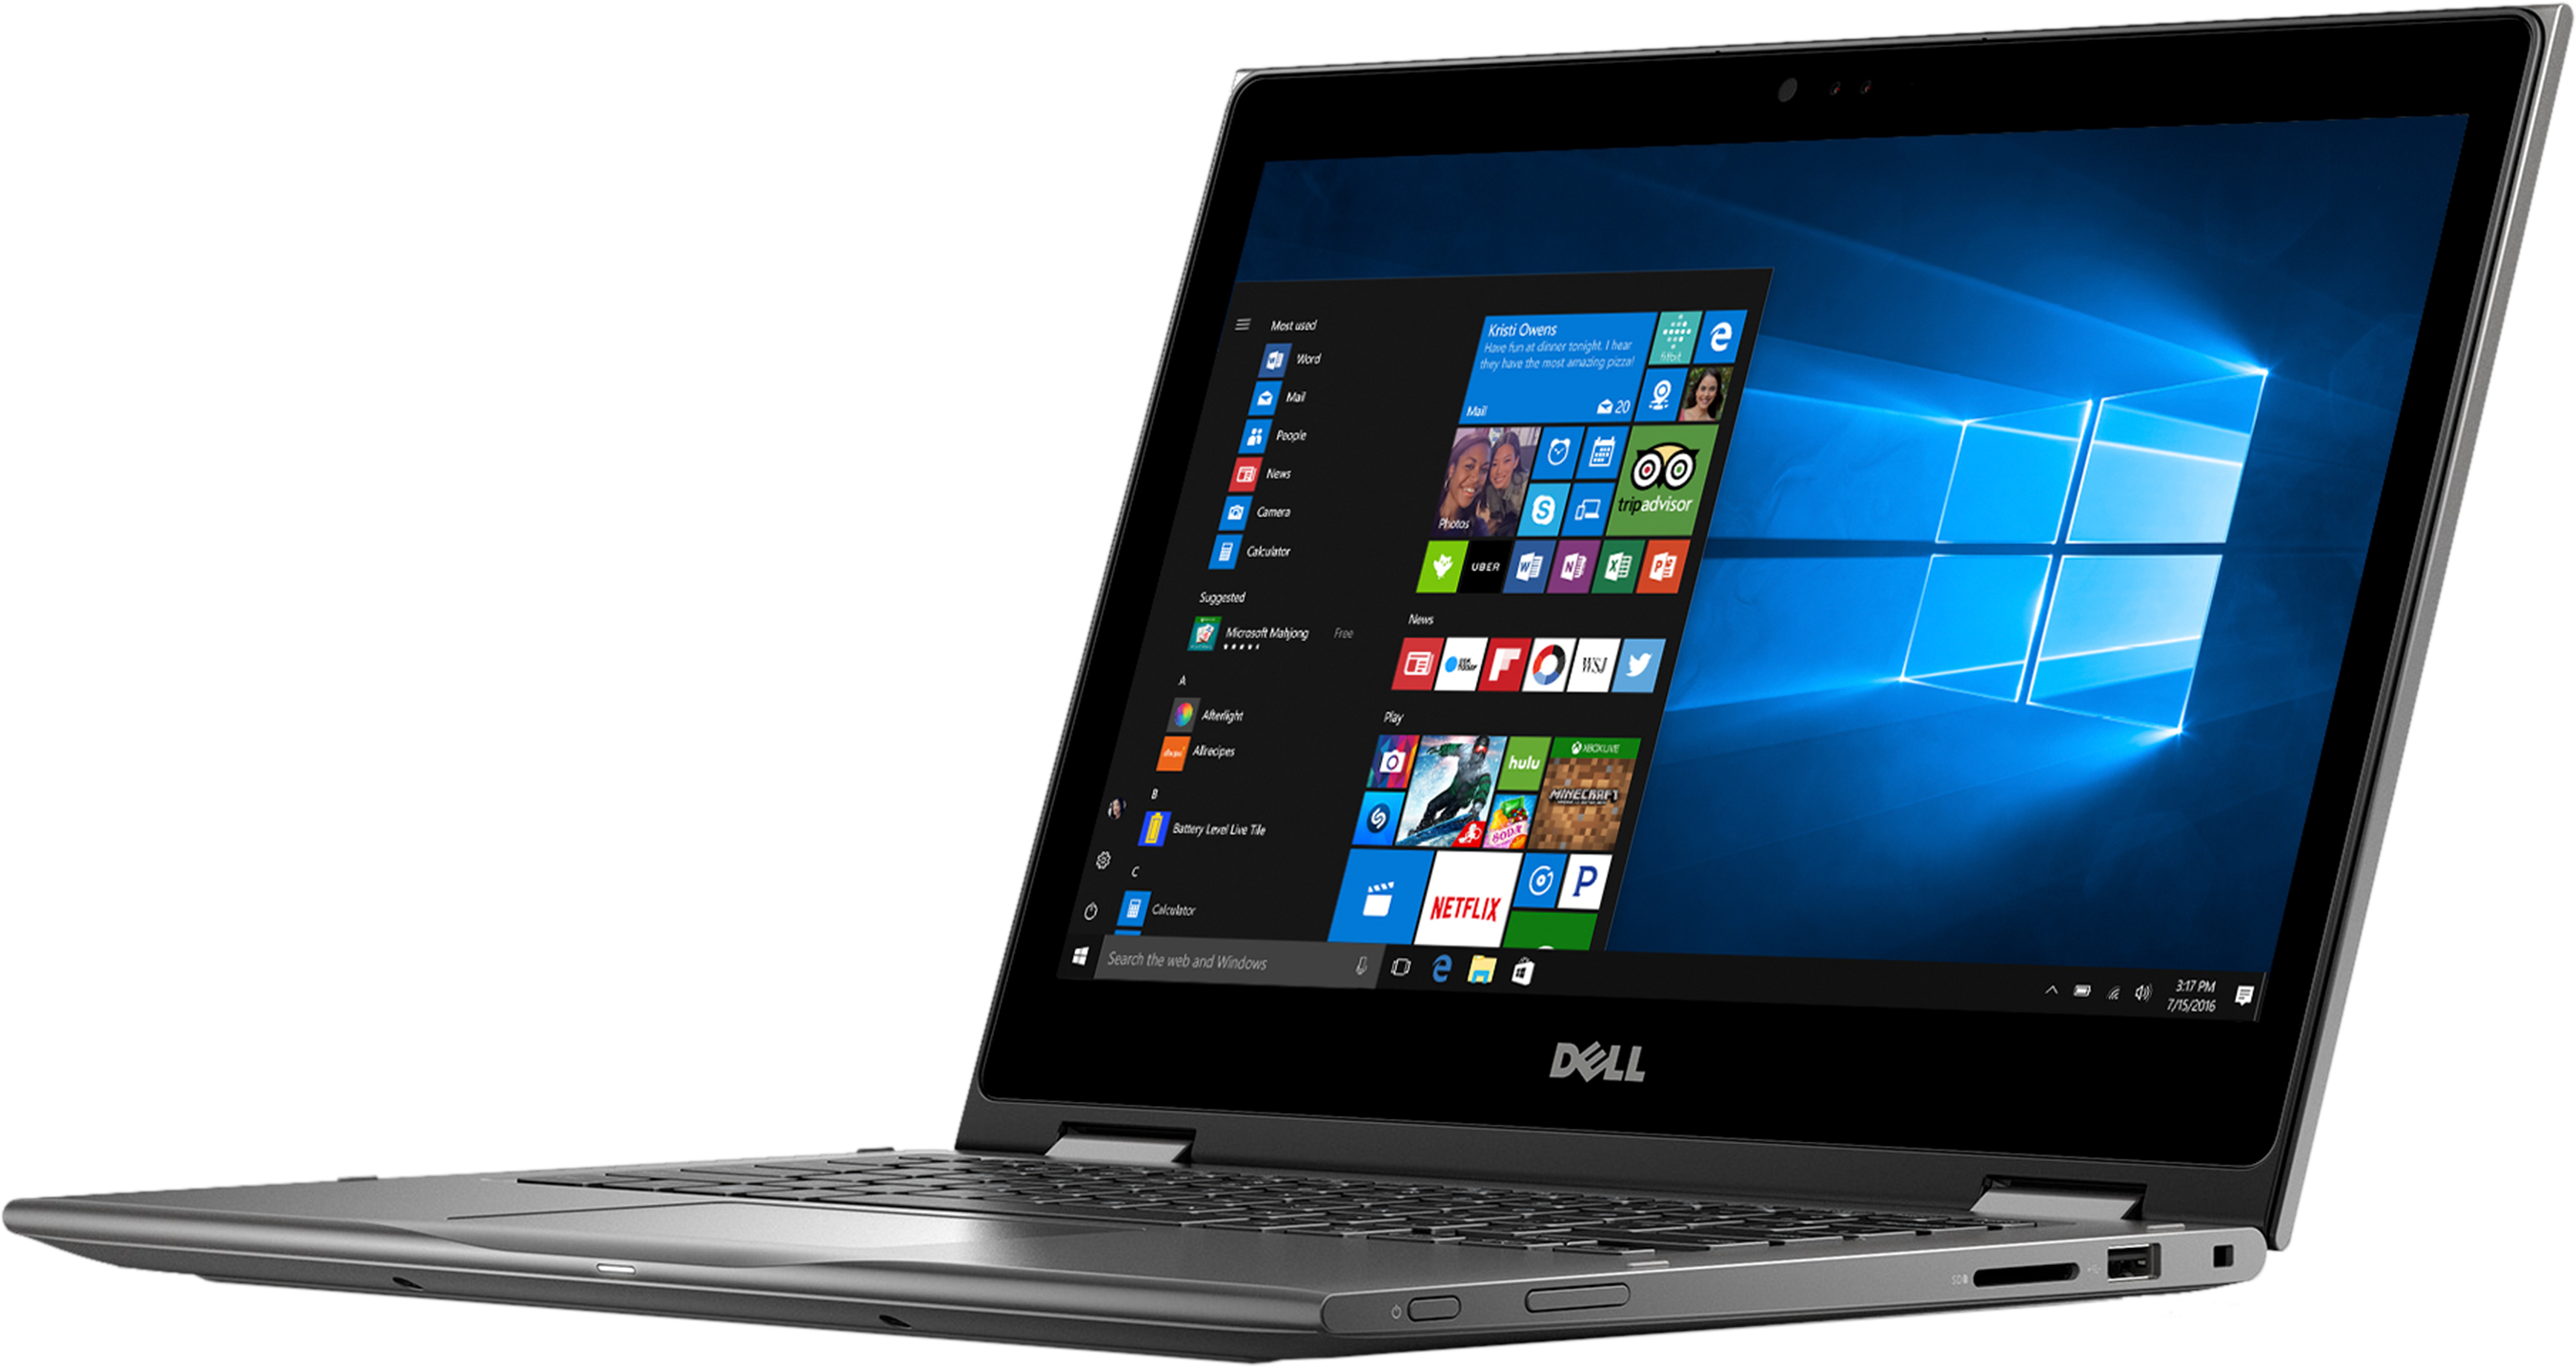 Dell Inspiron 13 i5378-3601GRY-PUS 2 in 1 PC Deal